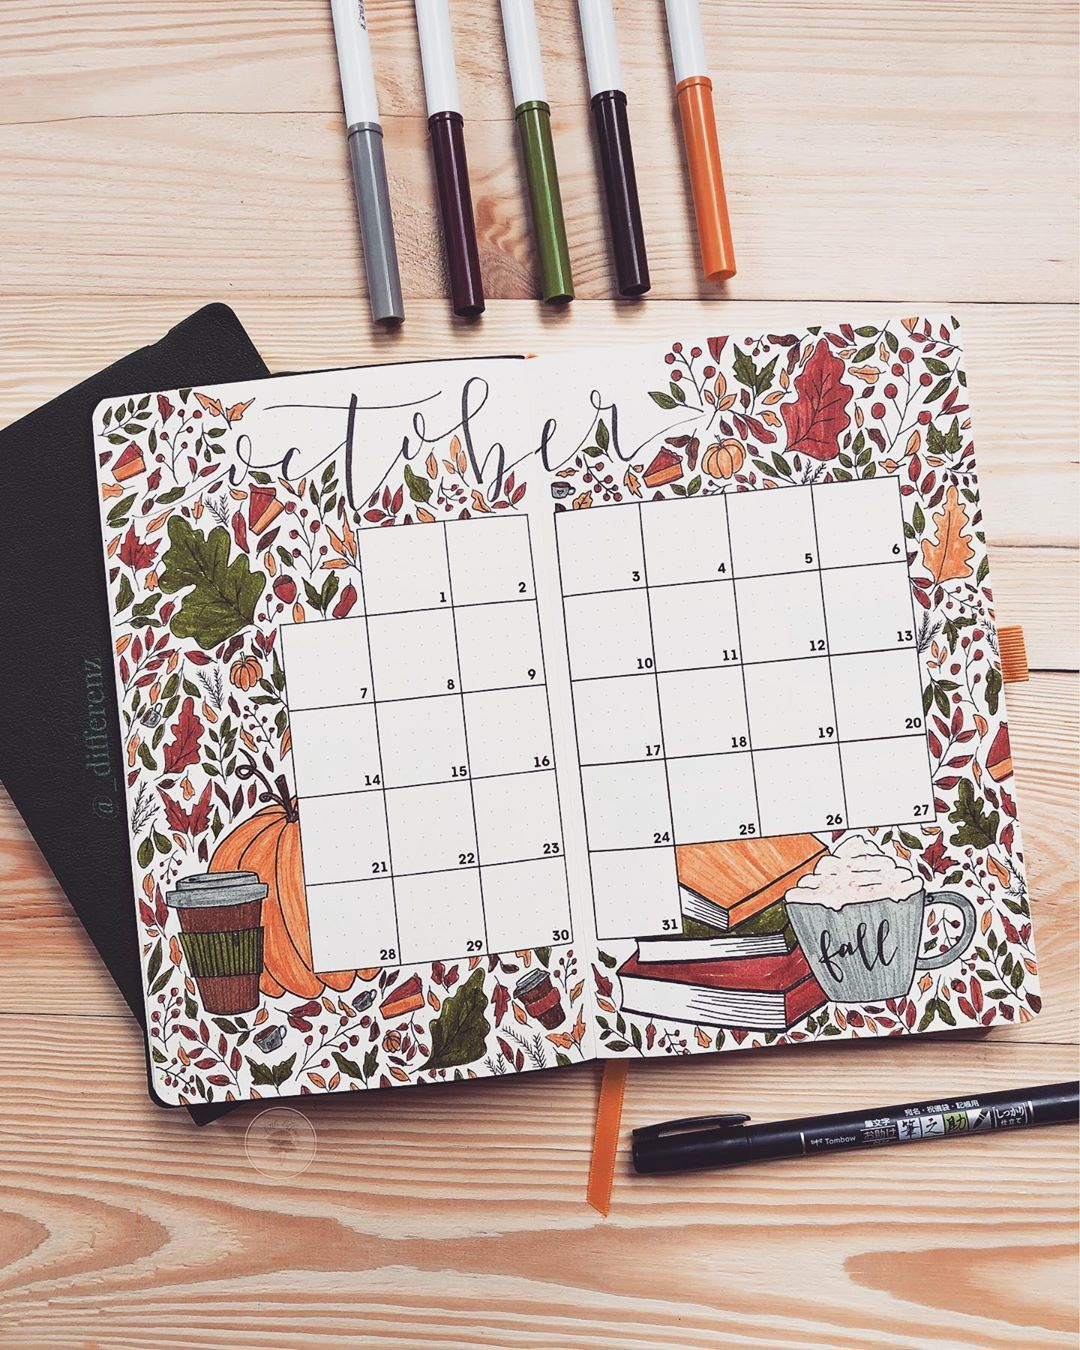 "� ������ ��������� on Instagram: ""������� �������� ������ Something that excites me to plan my activities is a beautifully decorated calendar. �� And this October calendar…"""